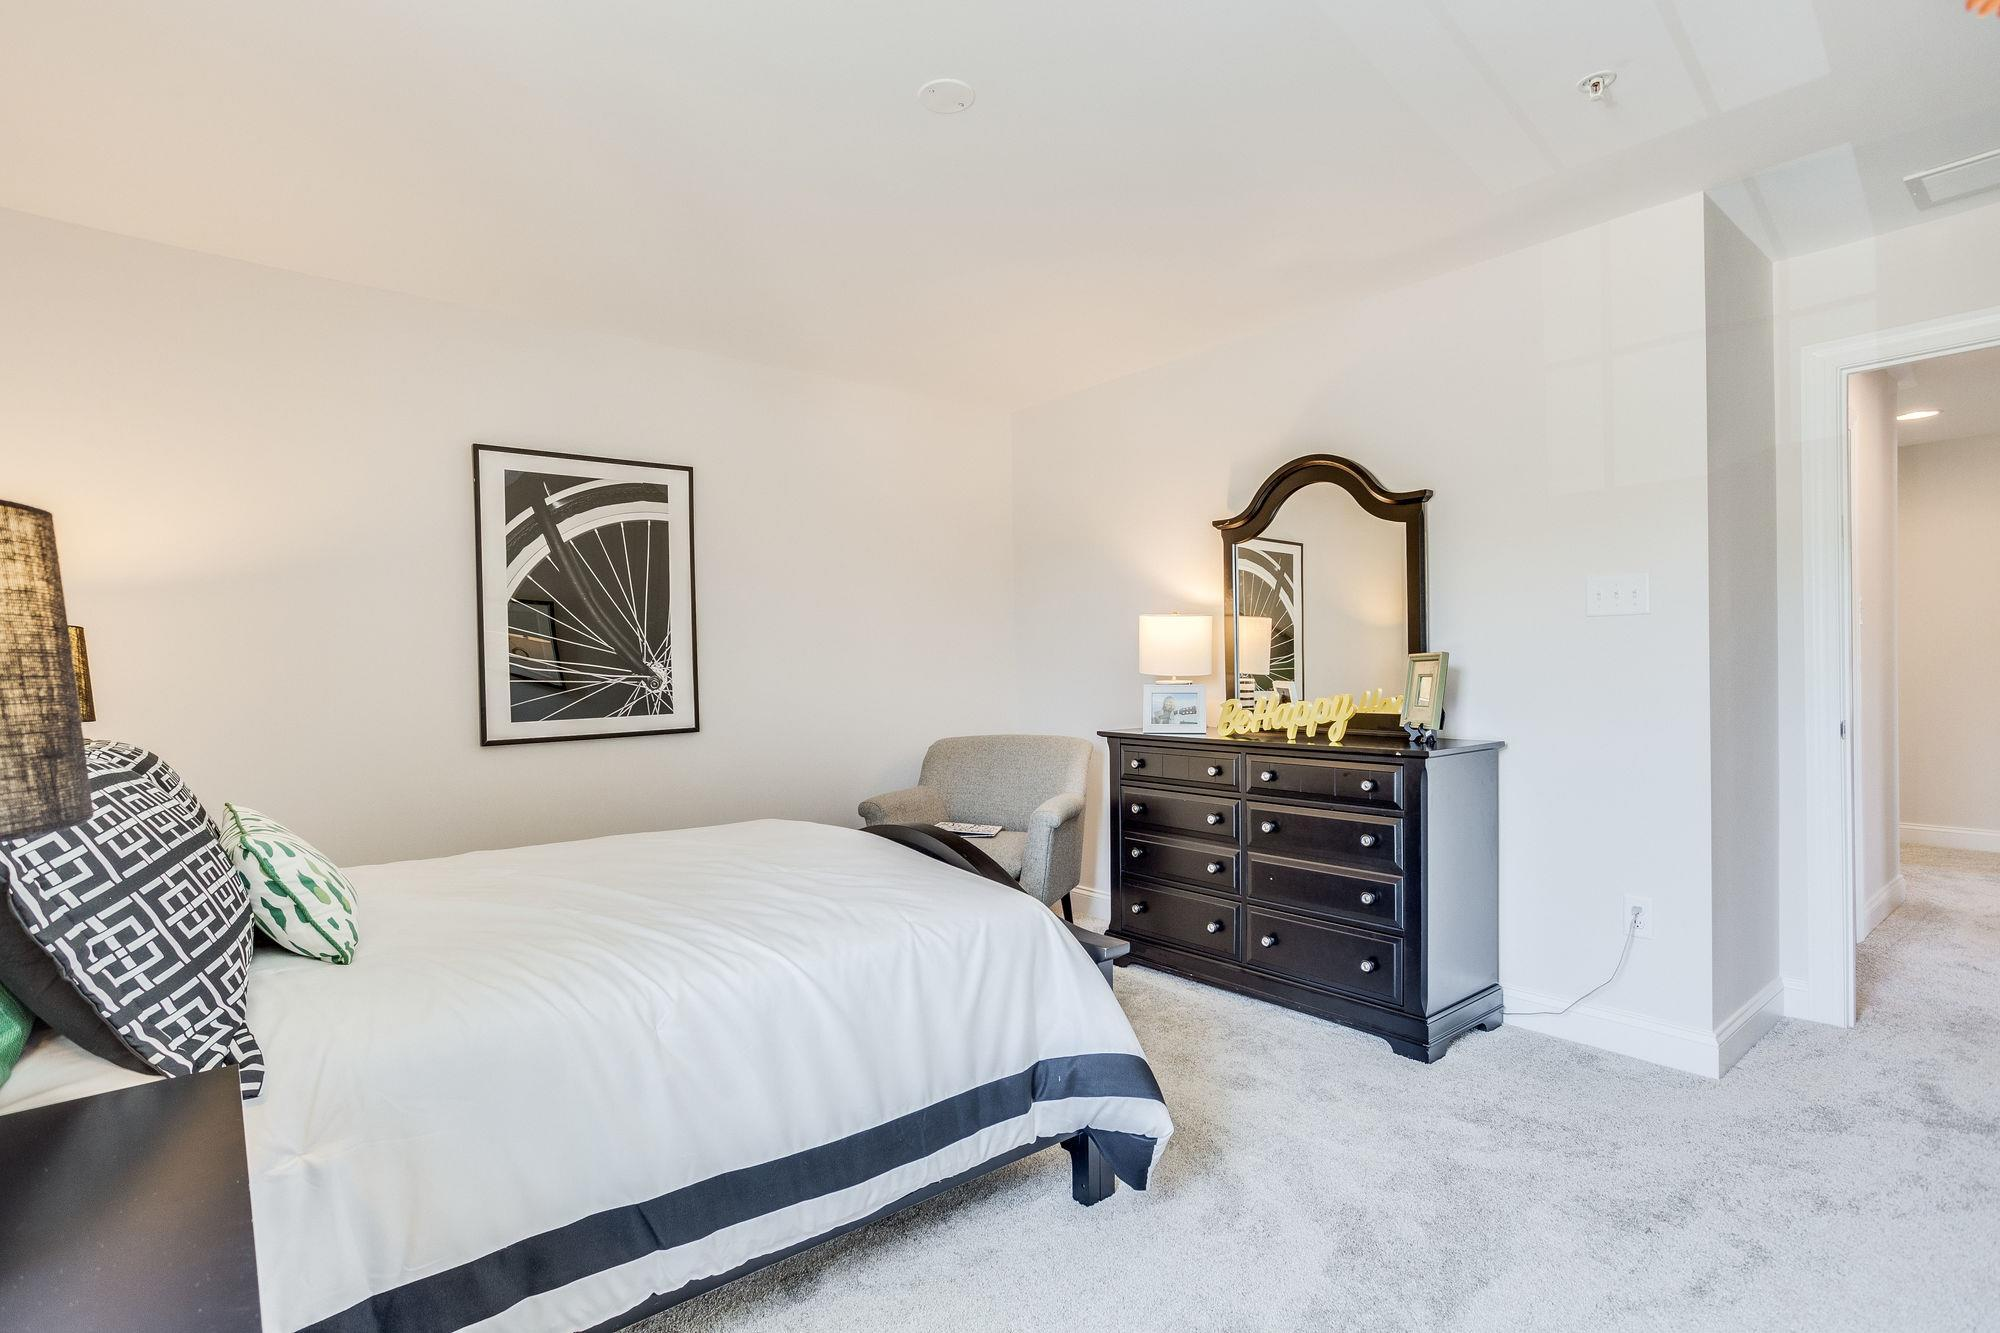 Bedroom featured in the Tidewater By Williamsburg Homes LLC in Baltimore, MD